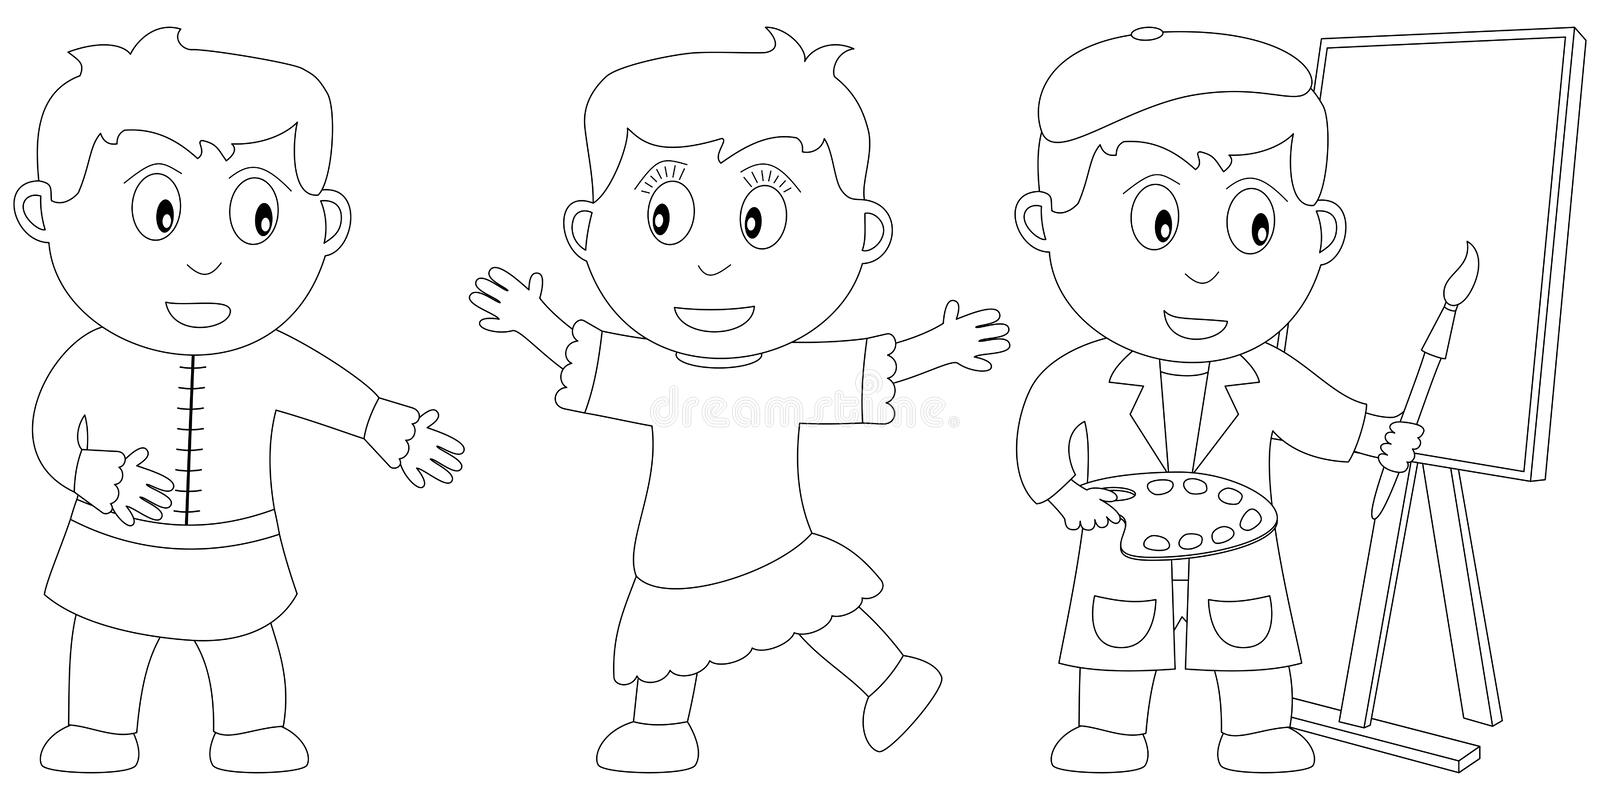 Coloring Book for Kids [16] royalty free illustration